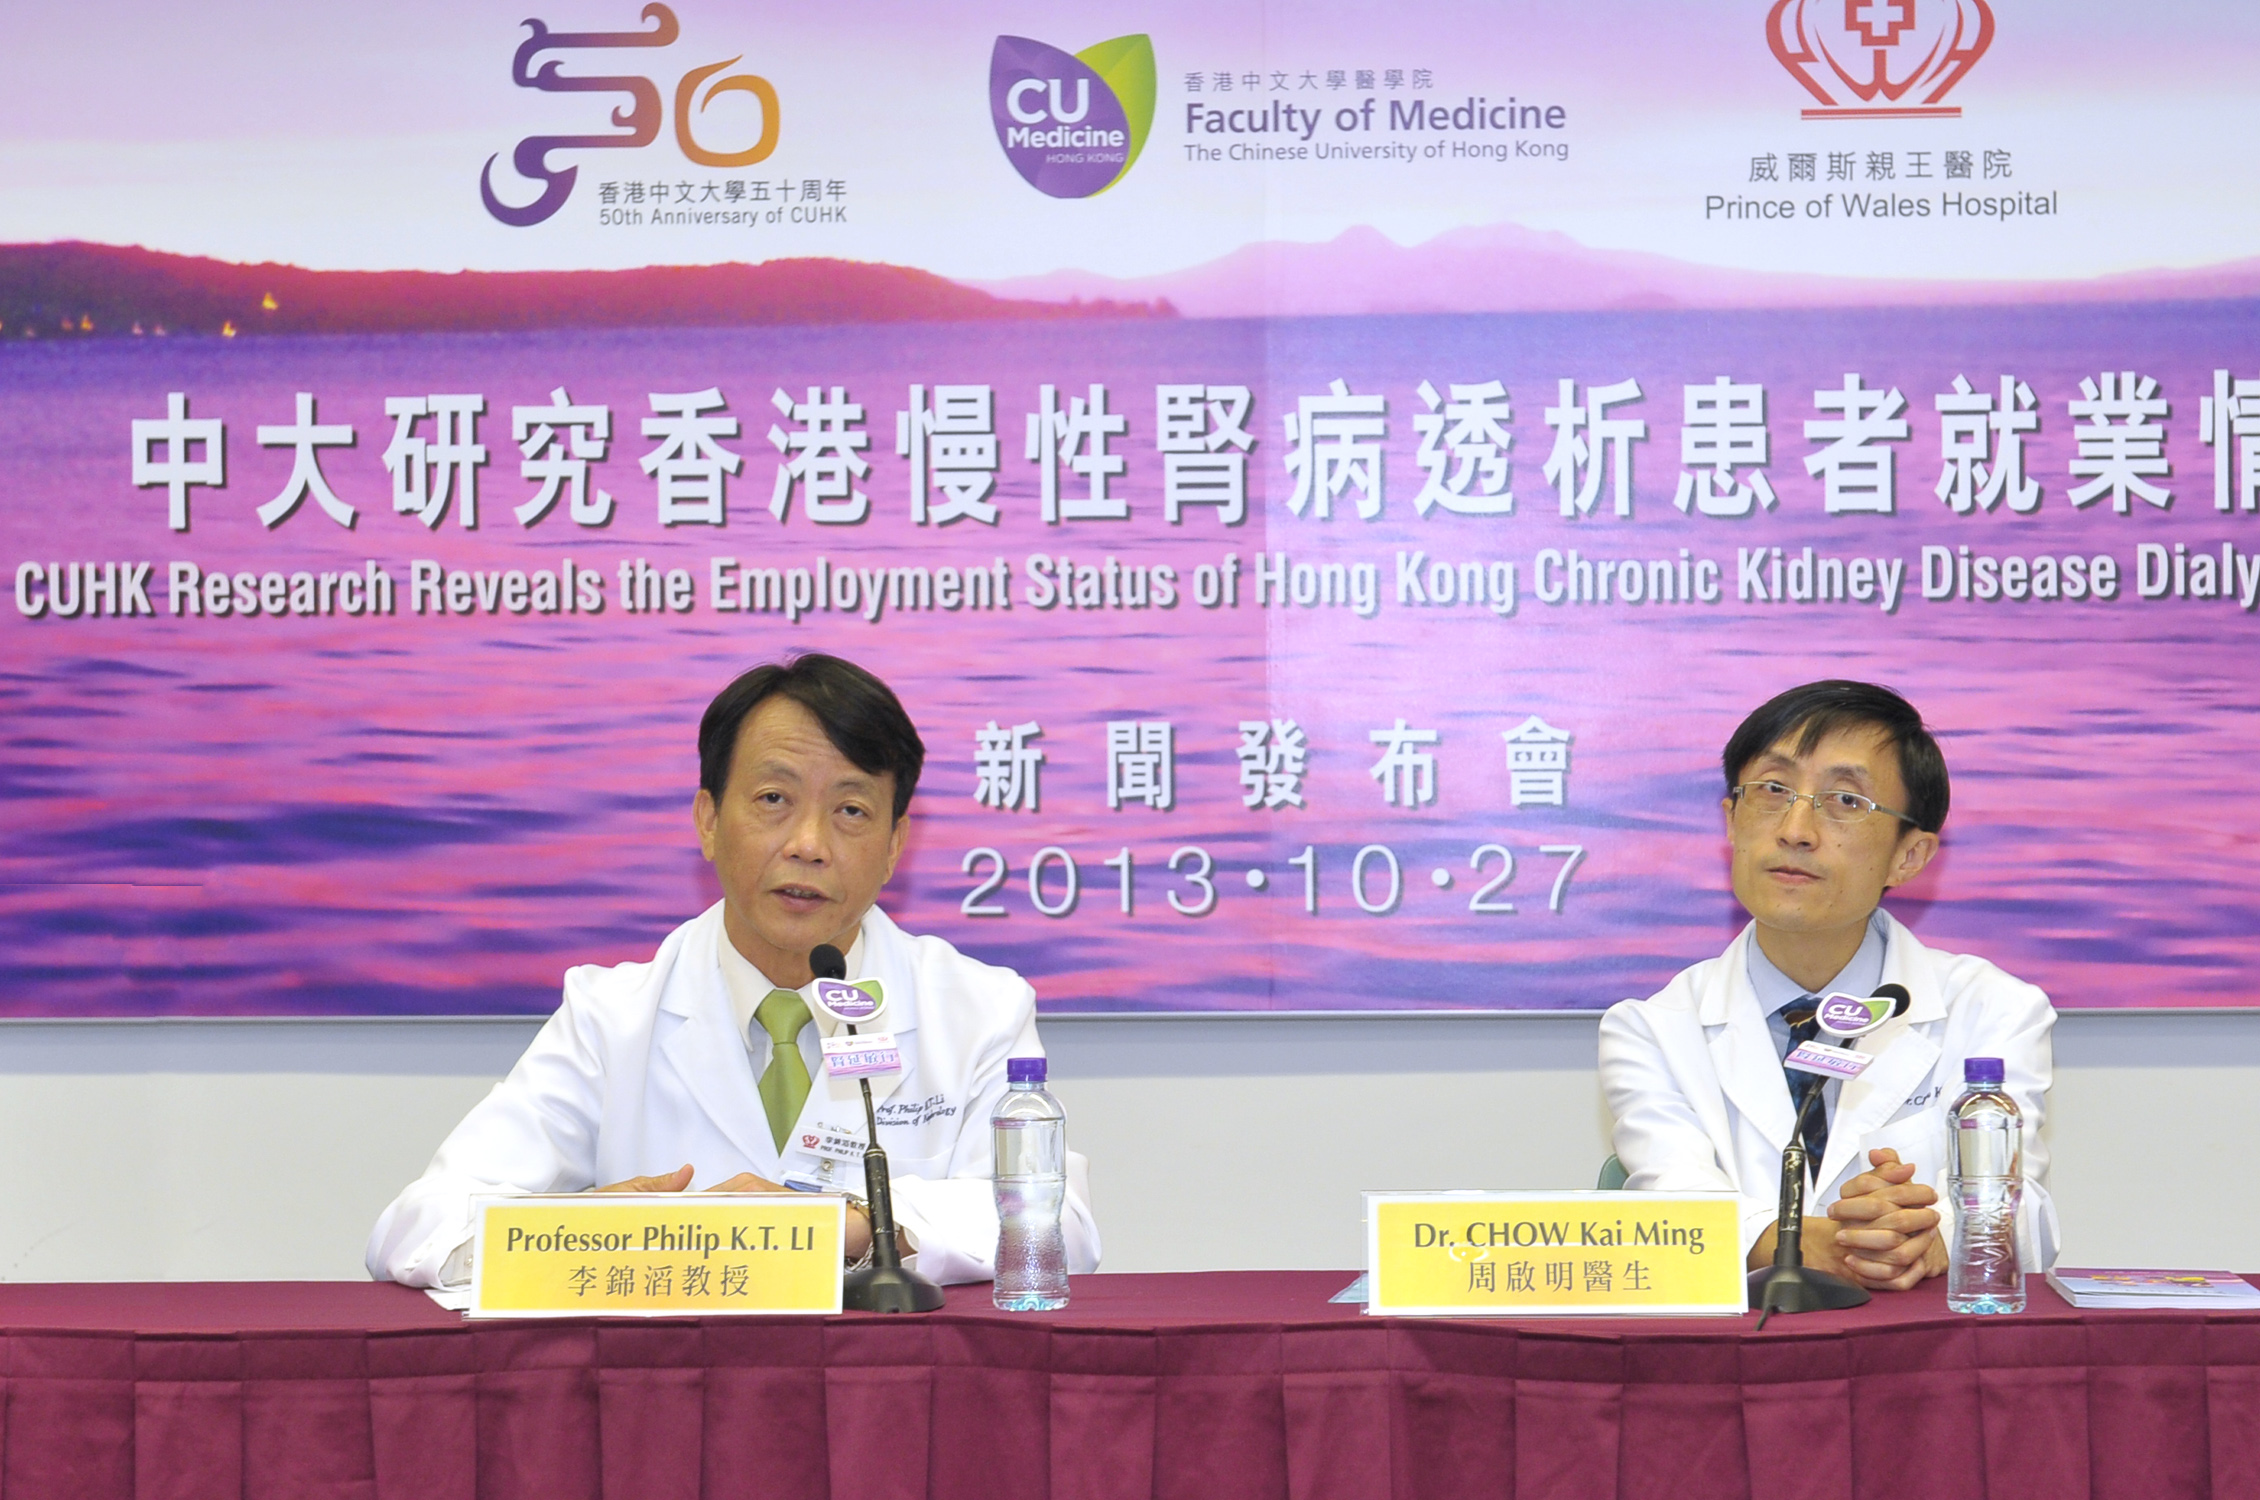 (From left) Prof. Philip Kam Tao LI, Chief of Nephrology and Honorary Professor, and Dr. Kai Ming CHOW, Honorary Clinical Associate Professor, Department of Medicine and Therapeutics at CUHK present their recent research findings on the employment status of chronic kidney disease dialysis patients on peritoneal dialysis in the Prince of Wales Hospital.